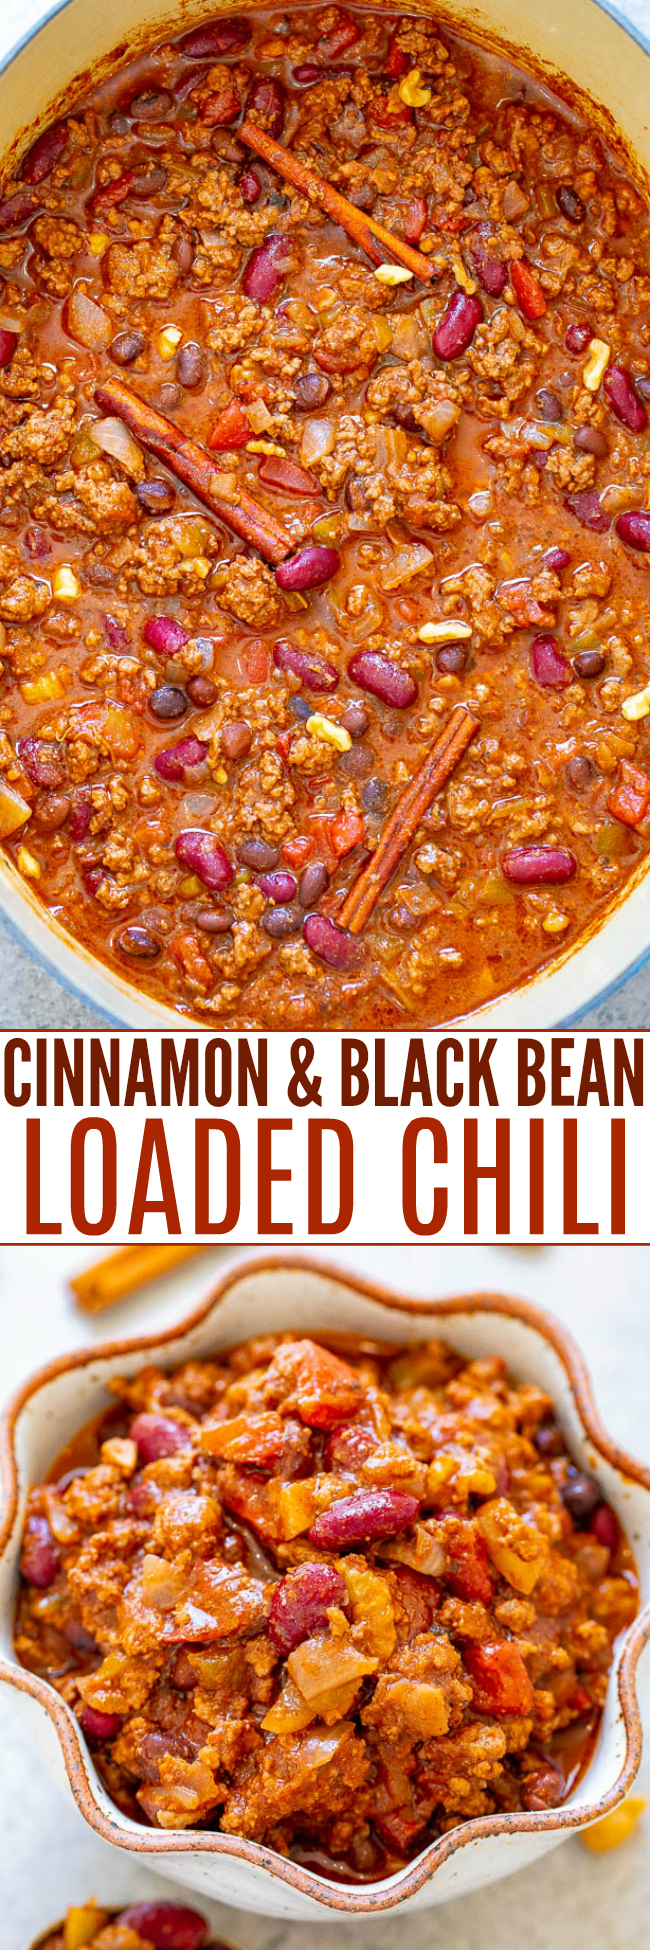 30 Minute Cinnamon And Black Bean Loaded Chili Averie Cooks